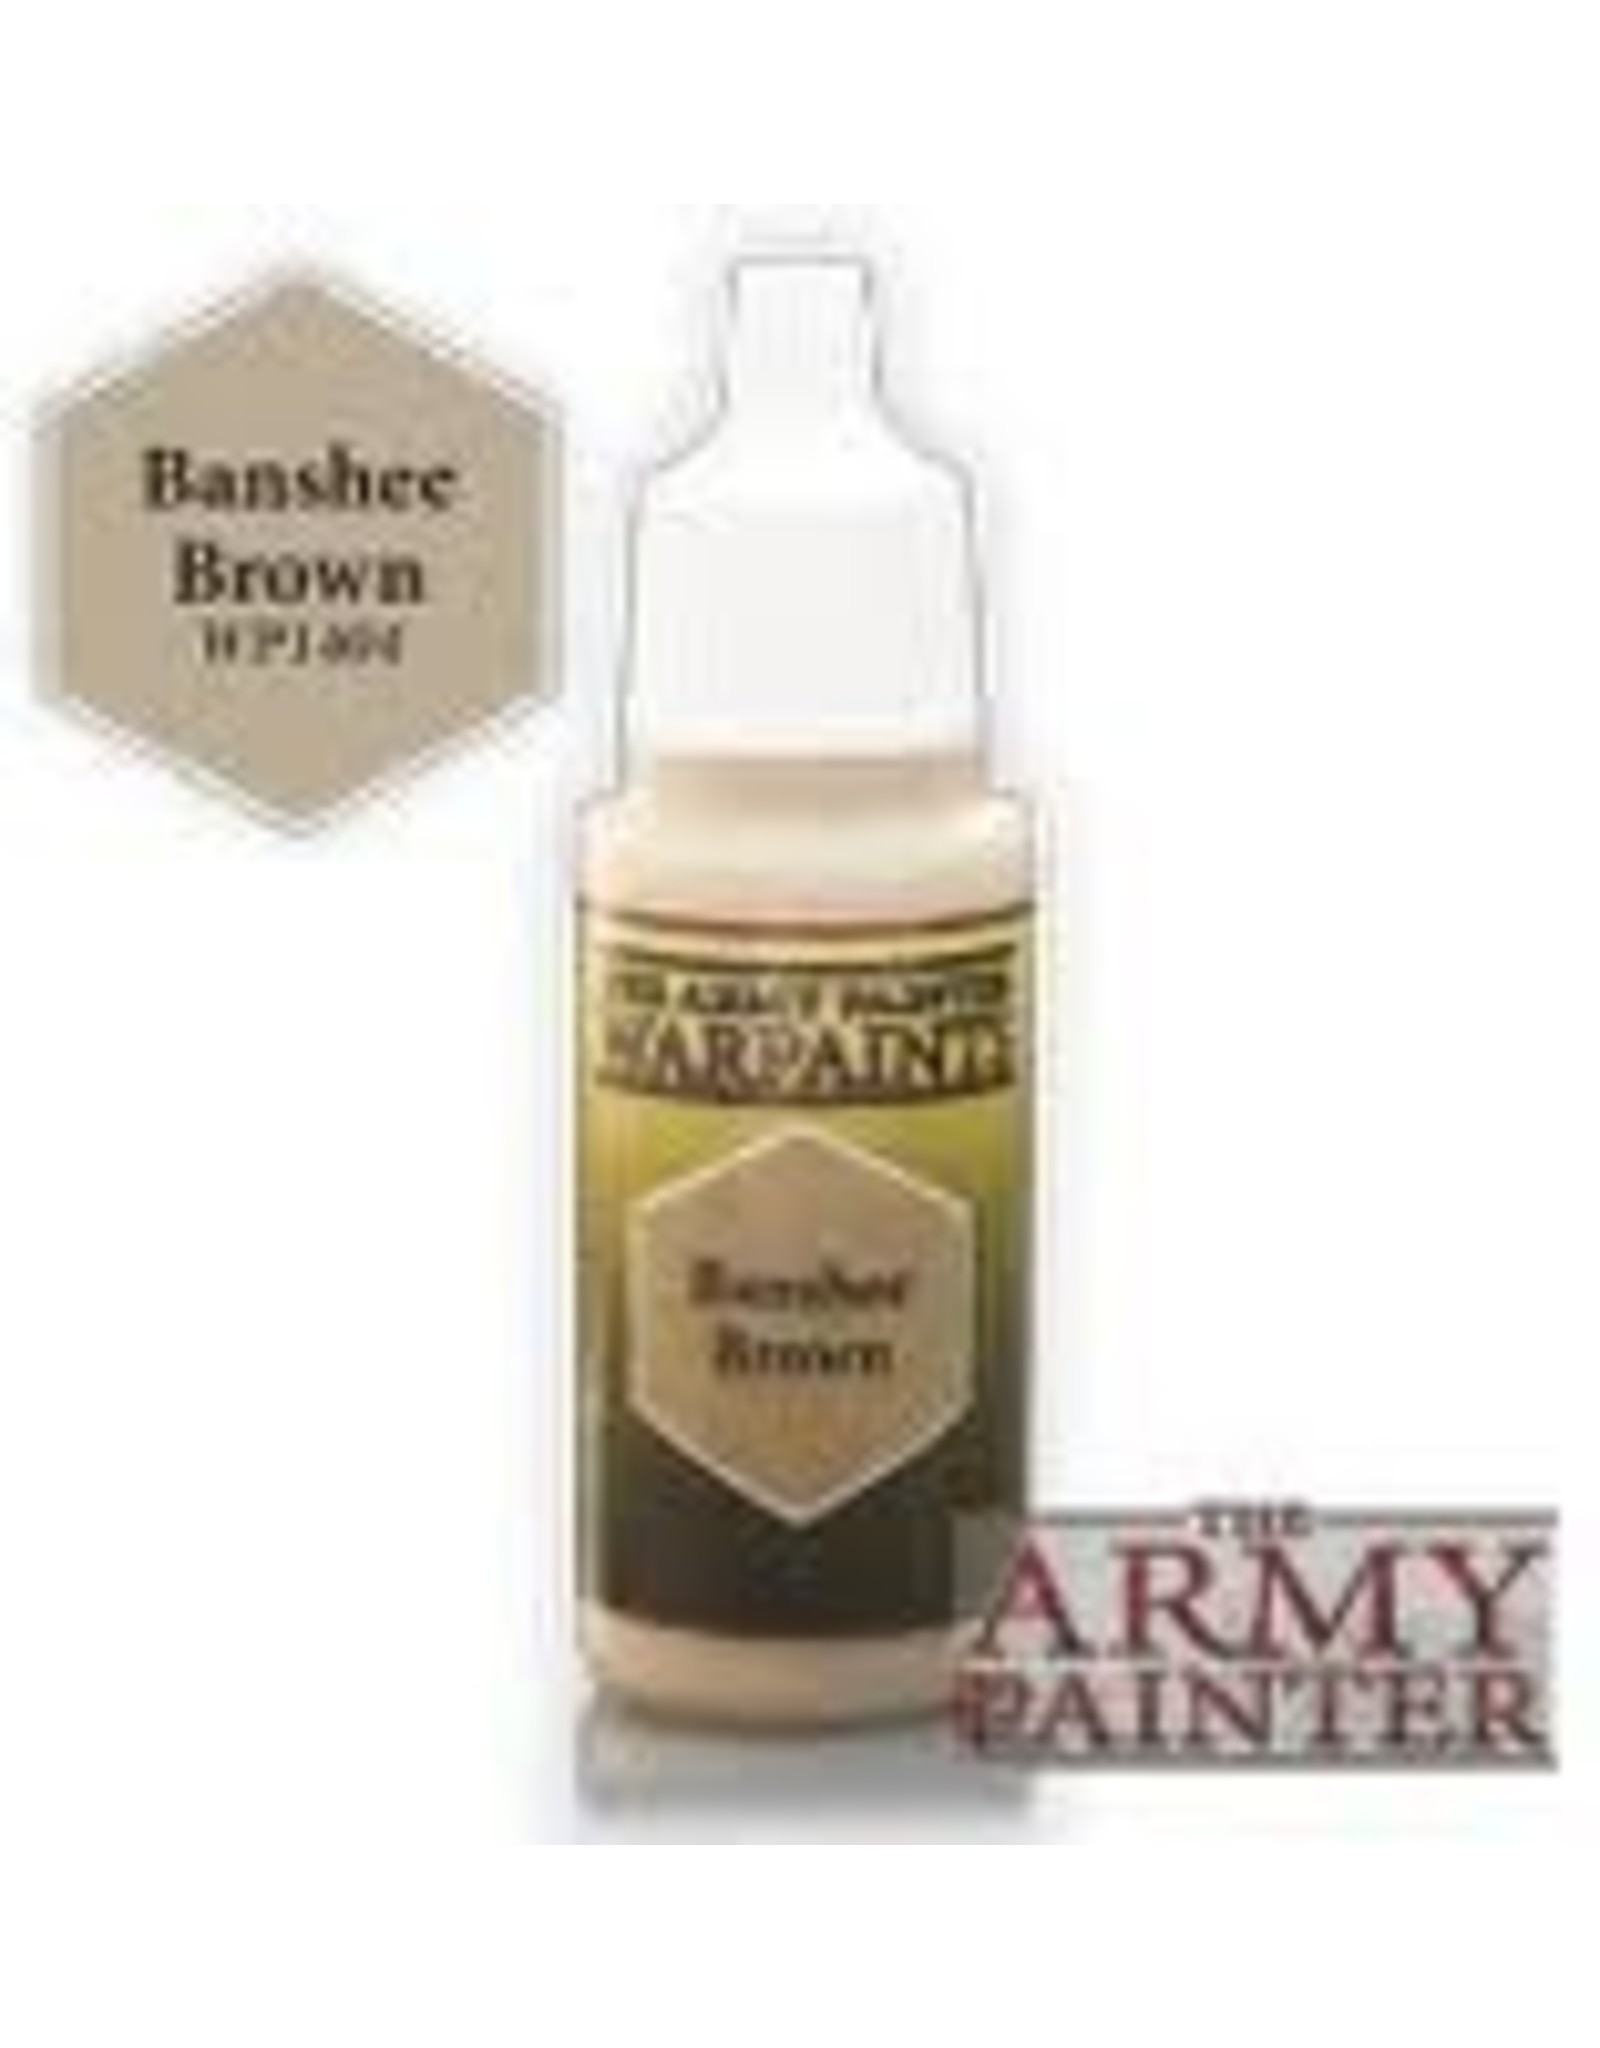 Army Painter Army Painter: Banshee Brown